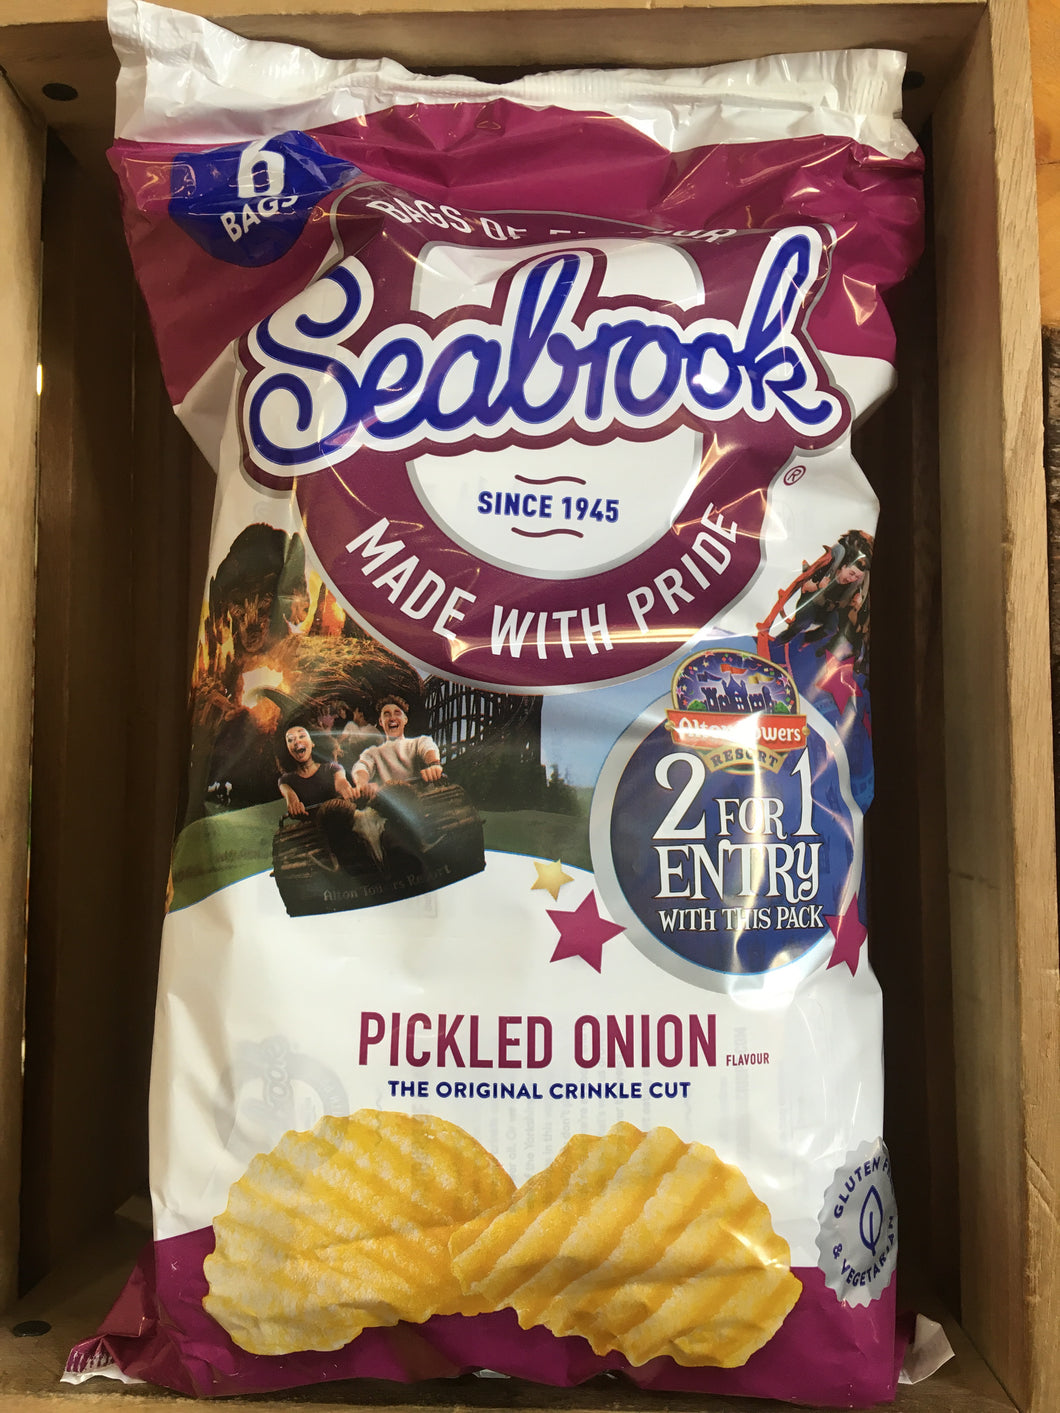 Seabrook Crinkle Cut Pickled Onion Crisps 6 Pack (6x25g)